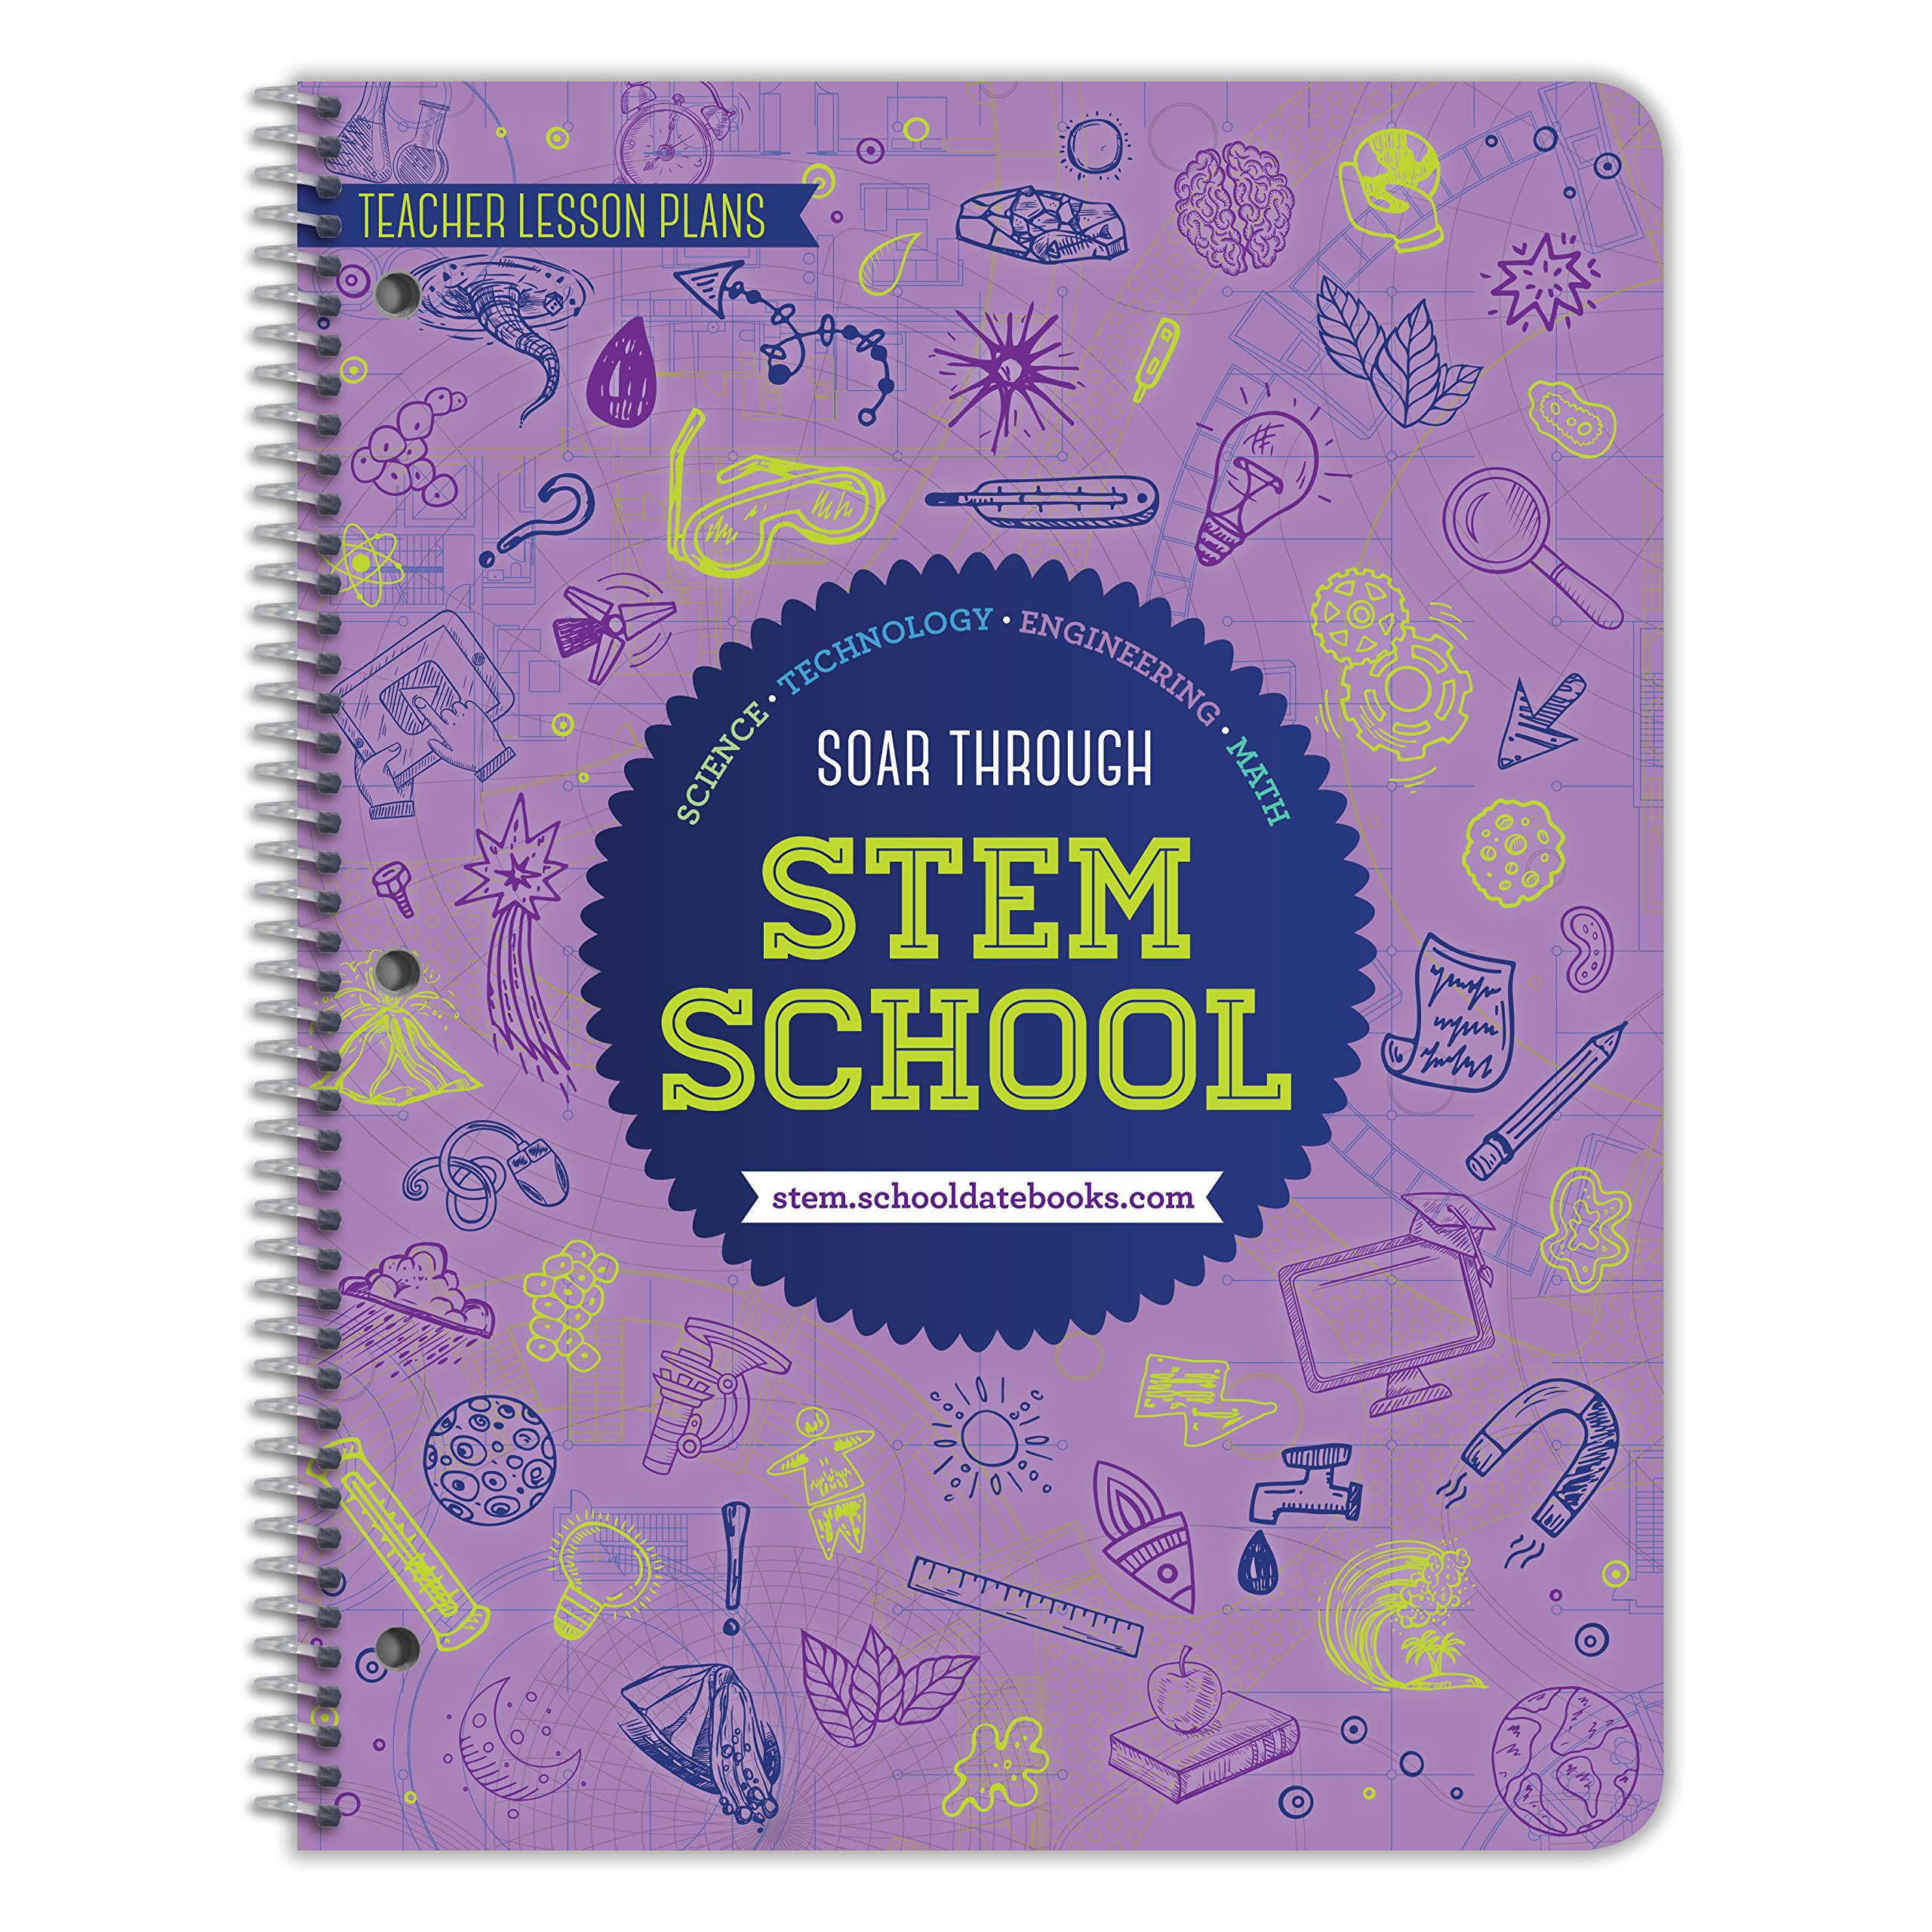 STEM Education Teacher Lesson Plans, Strategies and Activities Guide - for Grades 5 Though 9 - by School Datebooks